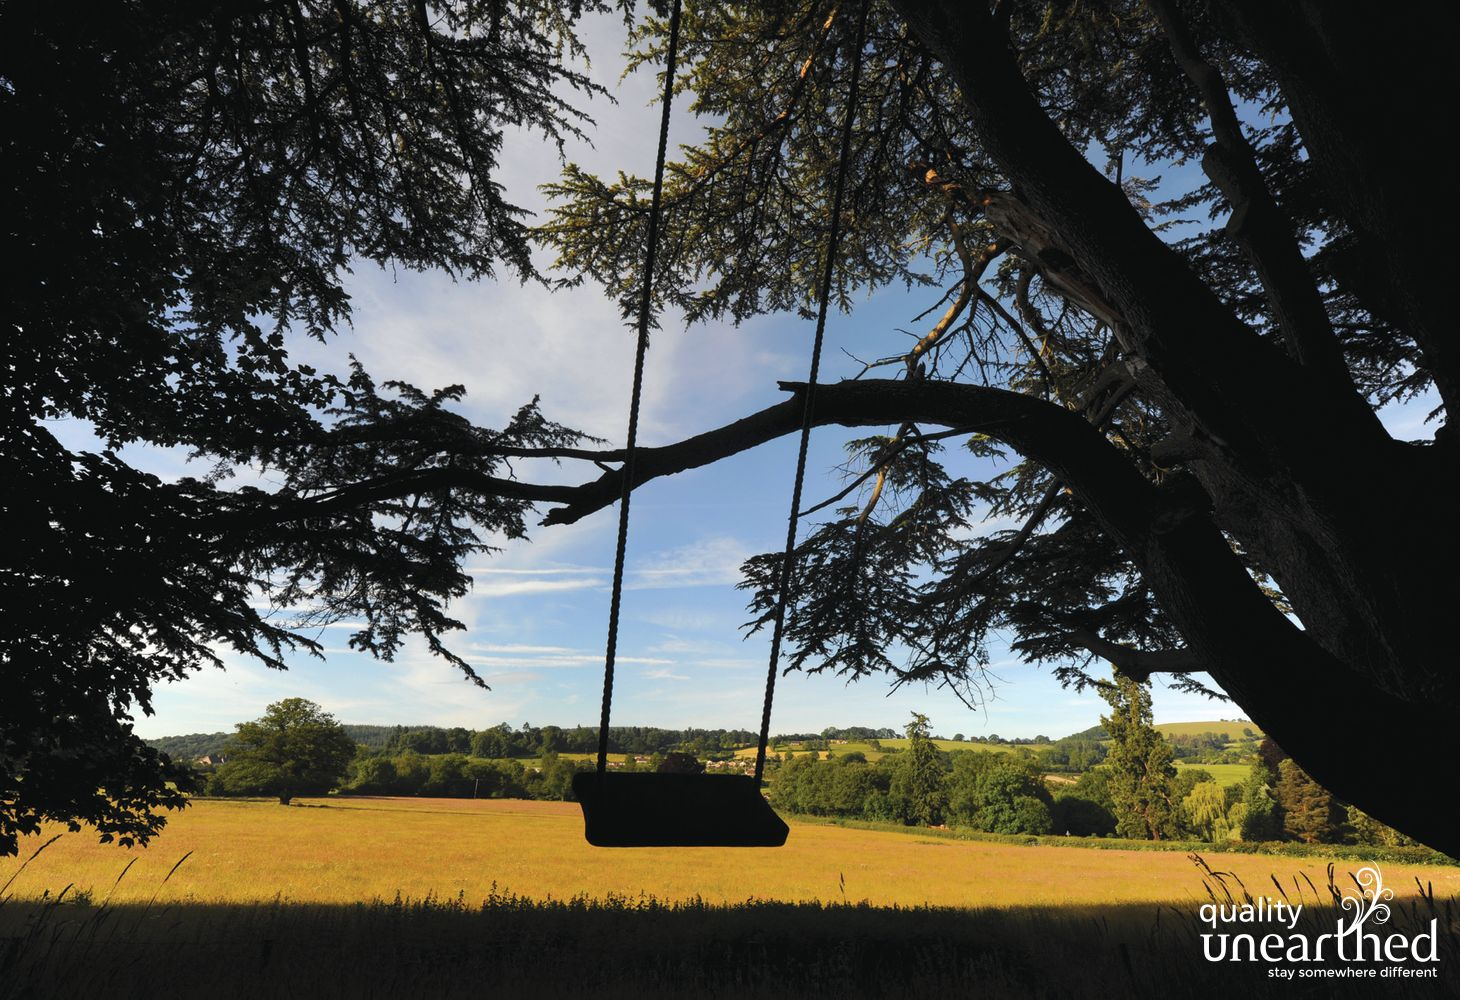 A tree swing adds to the atmosphere at this romantic yurt